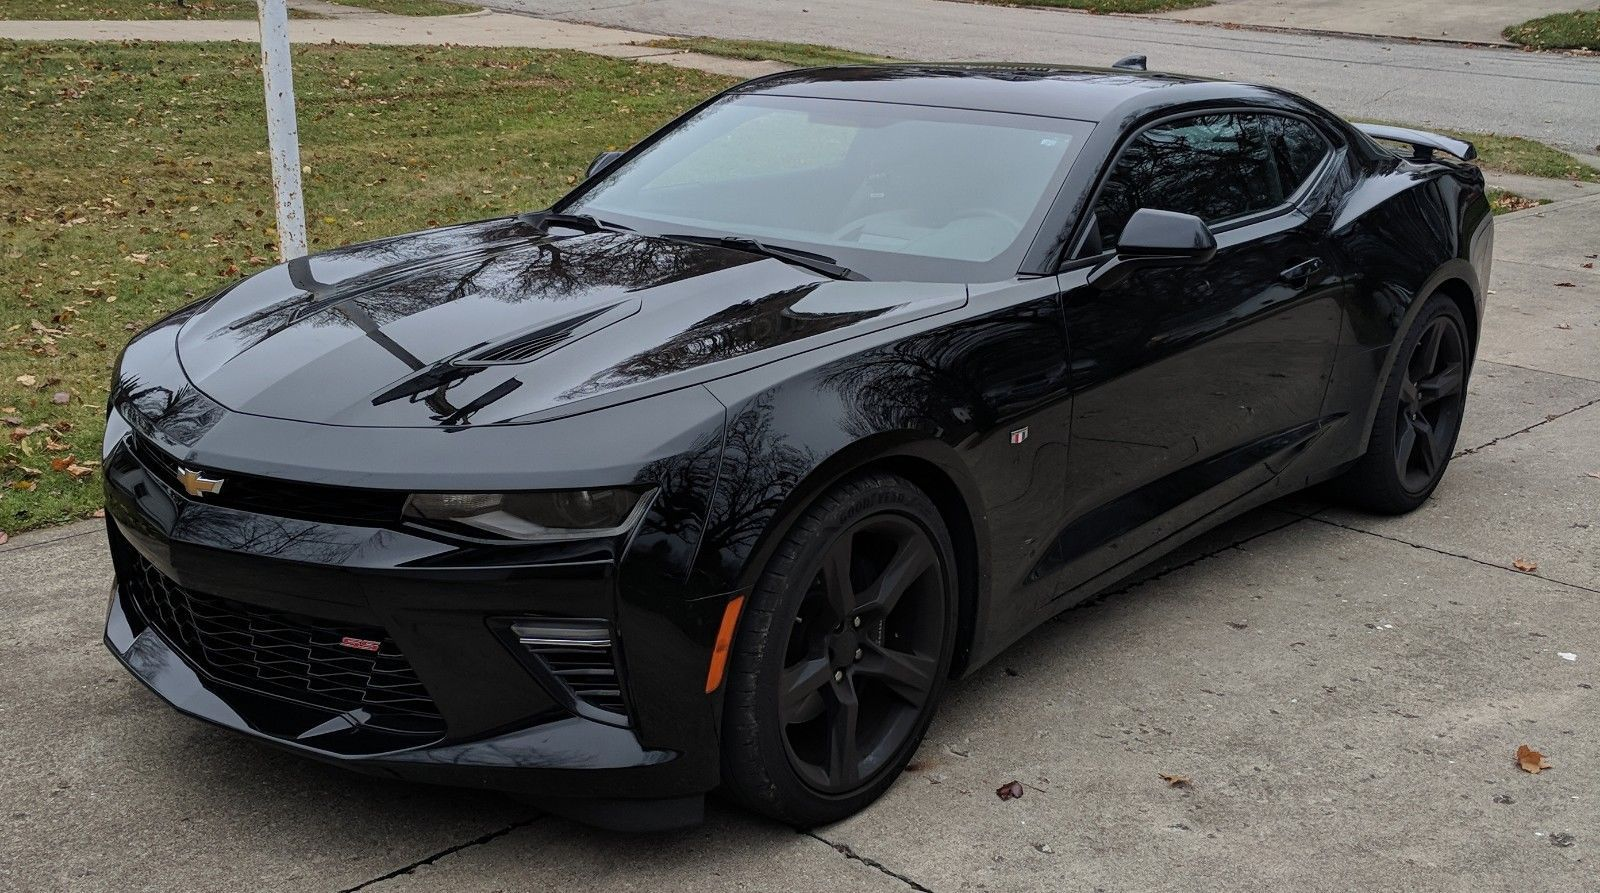 2016 Chevrolet Camaro 2ss 2016 Chevrolet Camaro 2ss Black 6500 Miles Chevy V8 Auto Leather Sunroof 2017 2018 Is In Stock And For Sale Mycarboard Com 2016 Chevrolet Camaro 2ss Chevrolet Camaro Camaro 2ss